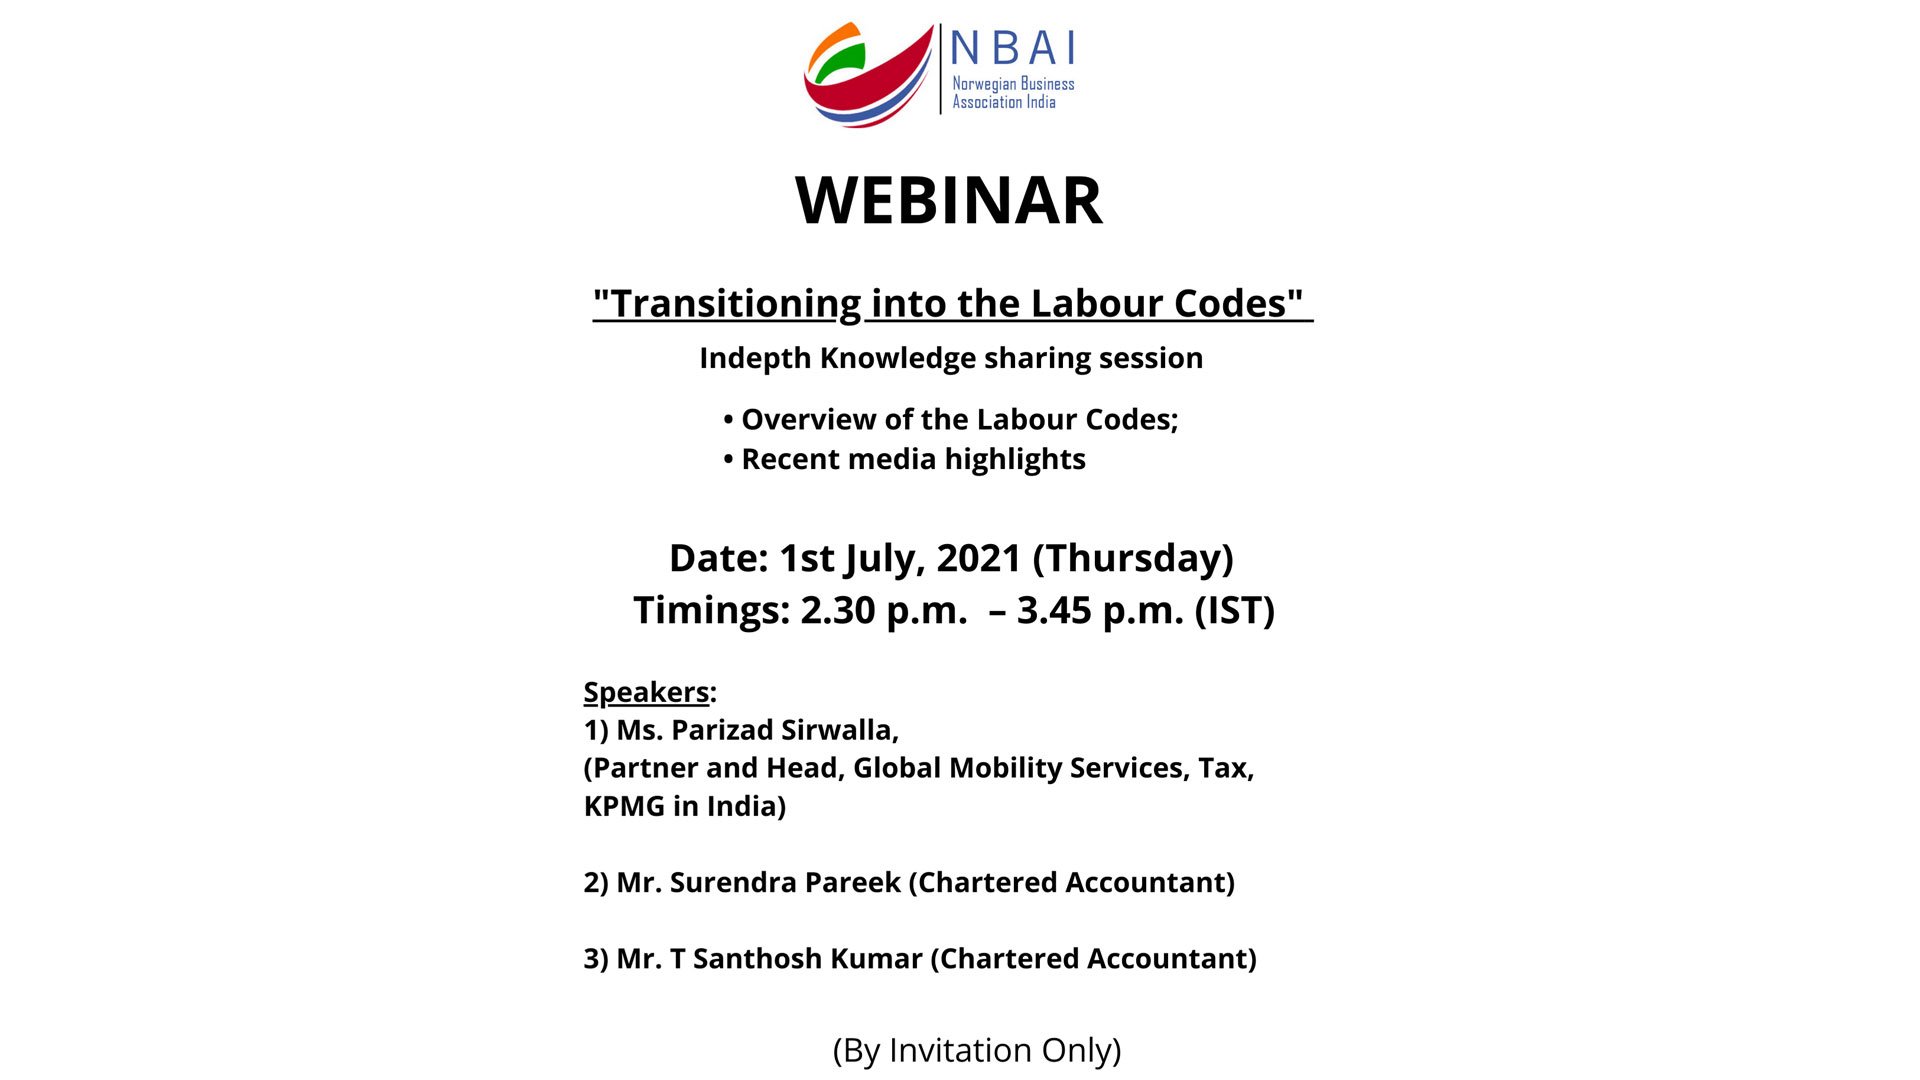 TRANSITIONING INTO THE LABOUR CODES (KNOWLEDGE SHARING SESSION)